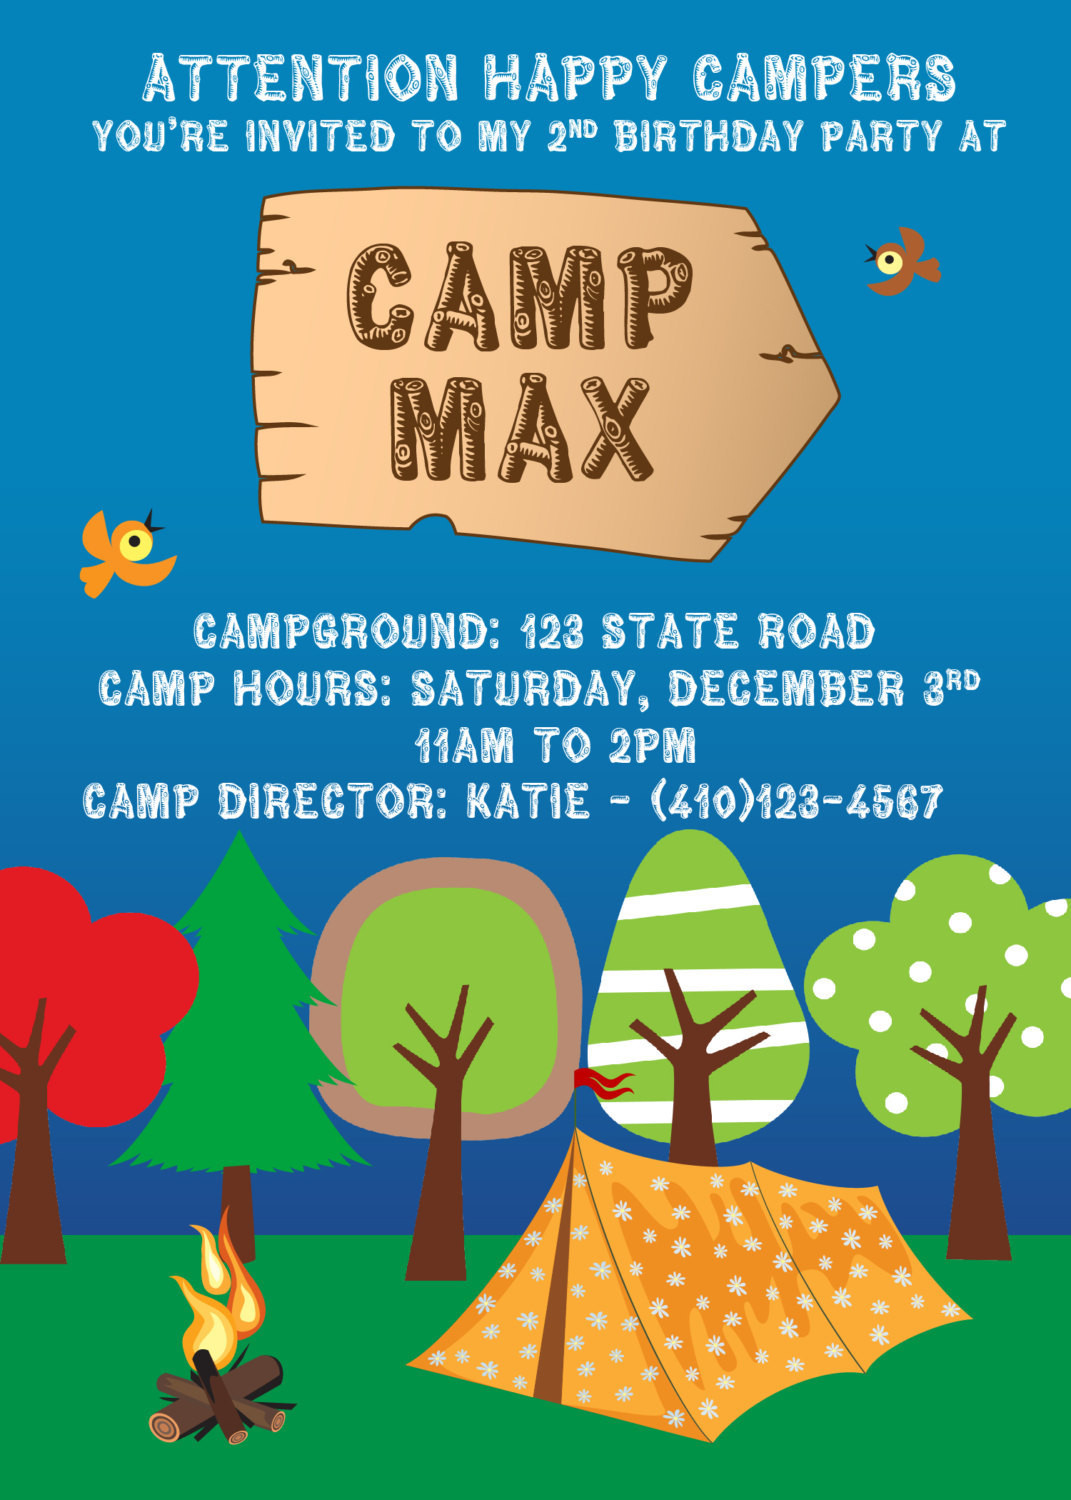 Best ideas about Camping Birthday Party Invitations . Save or Pin Camping Birthday Party Custom Printable Invitation Now.